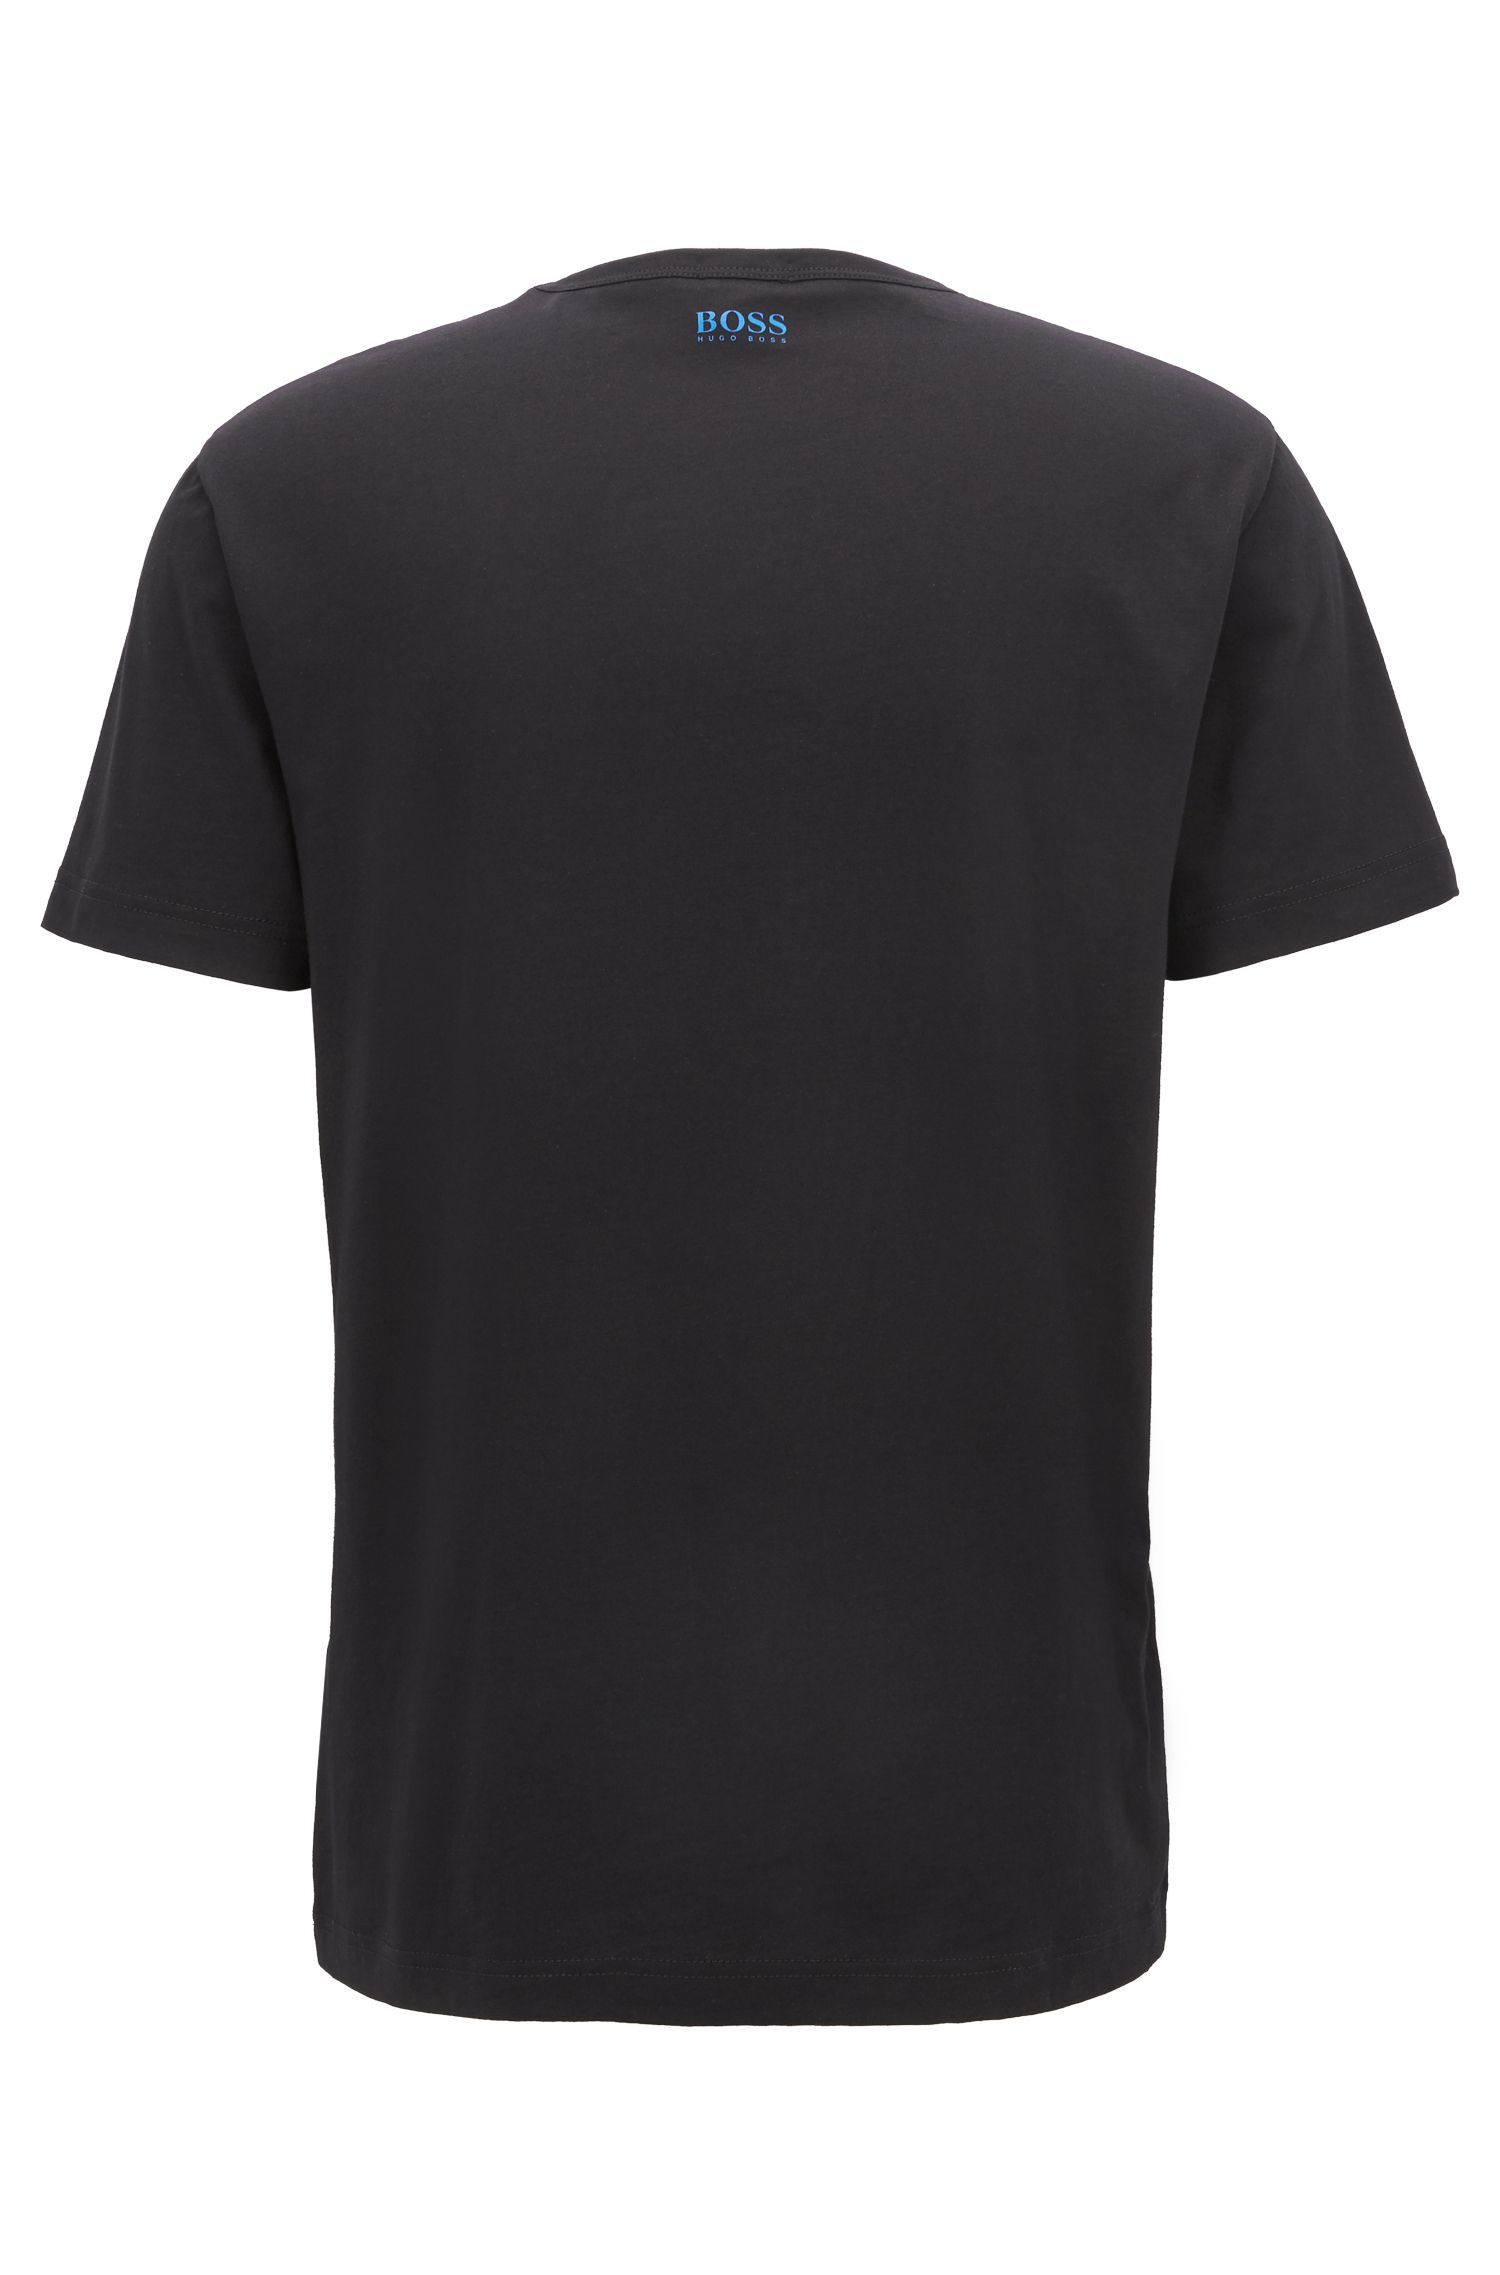 Short-sleeved printed T-shirt in single-jersey cotton, Black